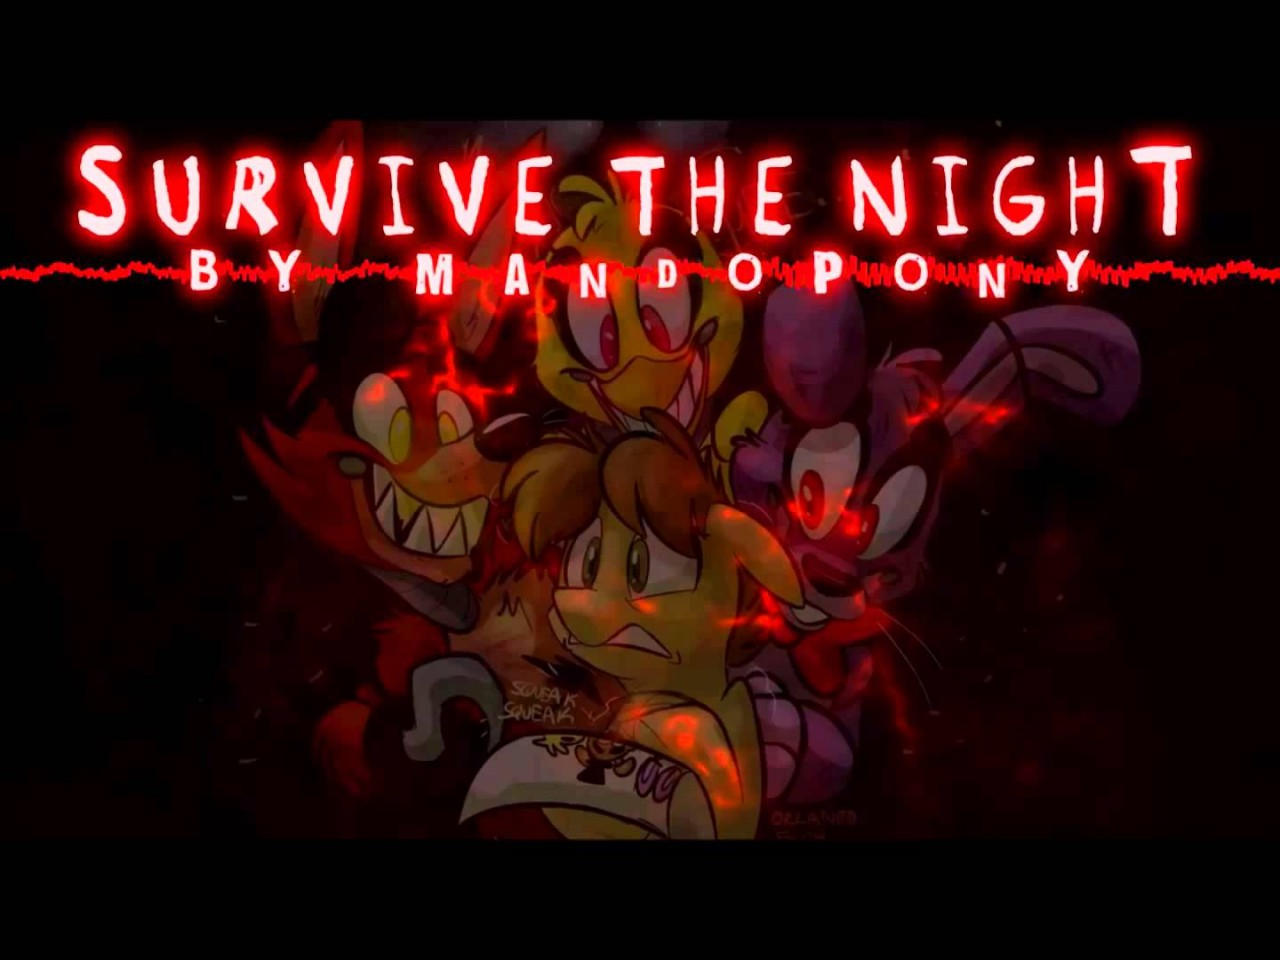 Survive the night mandopony note block minecraft project